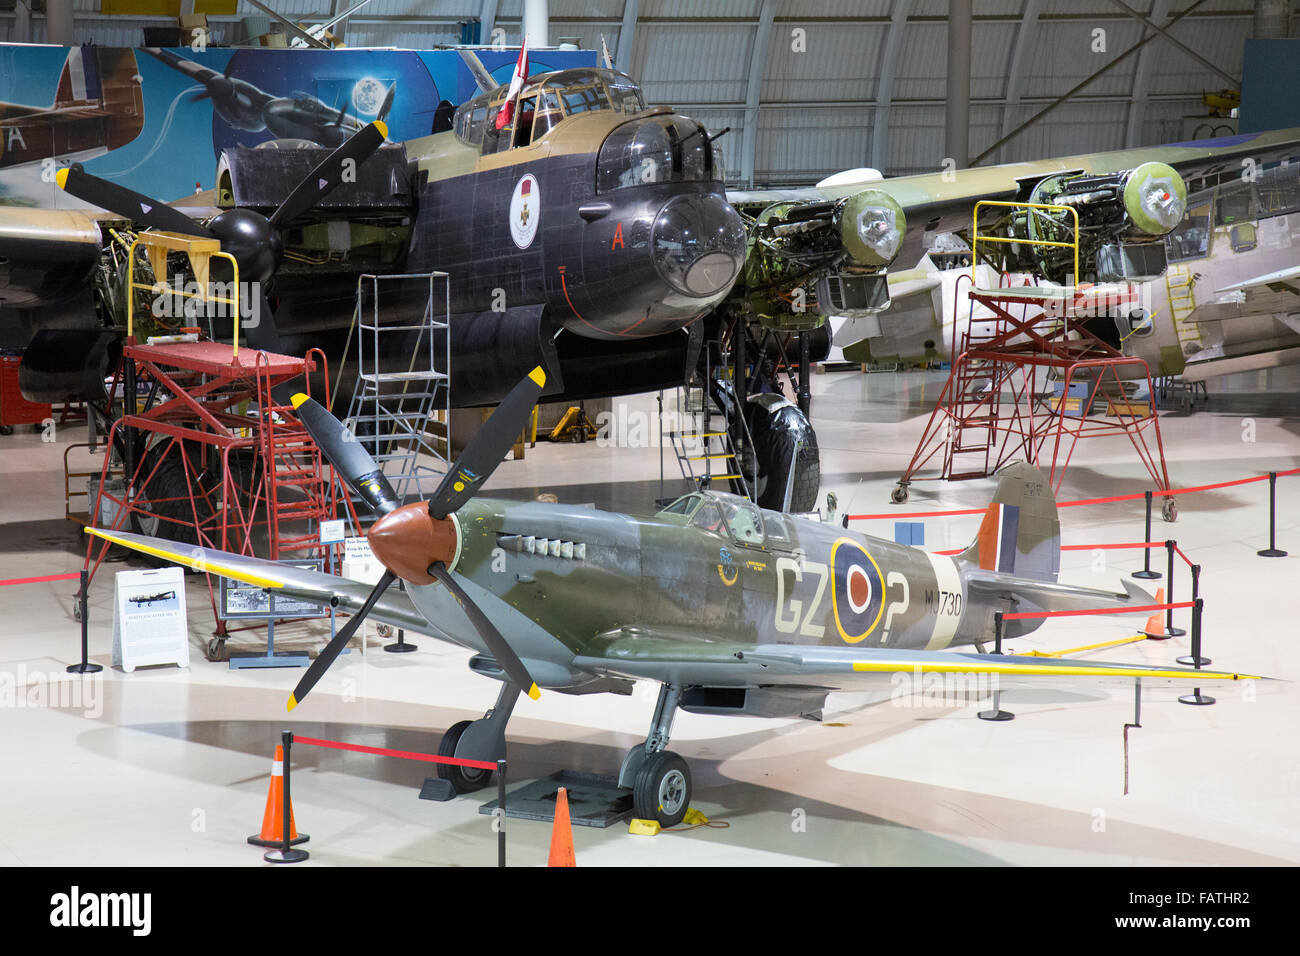 A Spitfire and Lancaster bomber inside the Canadian Warplane Heritage Museum in Hamilton, Ontario. - Stock Image